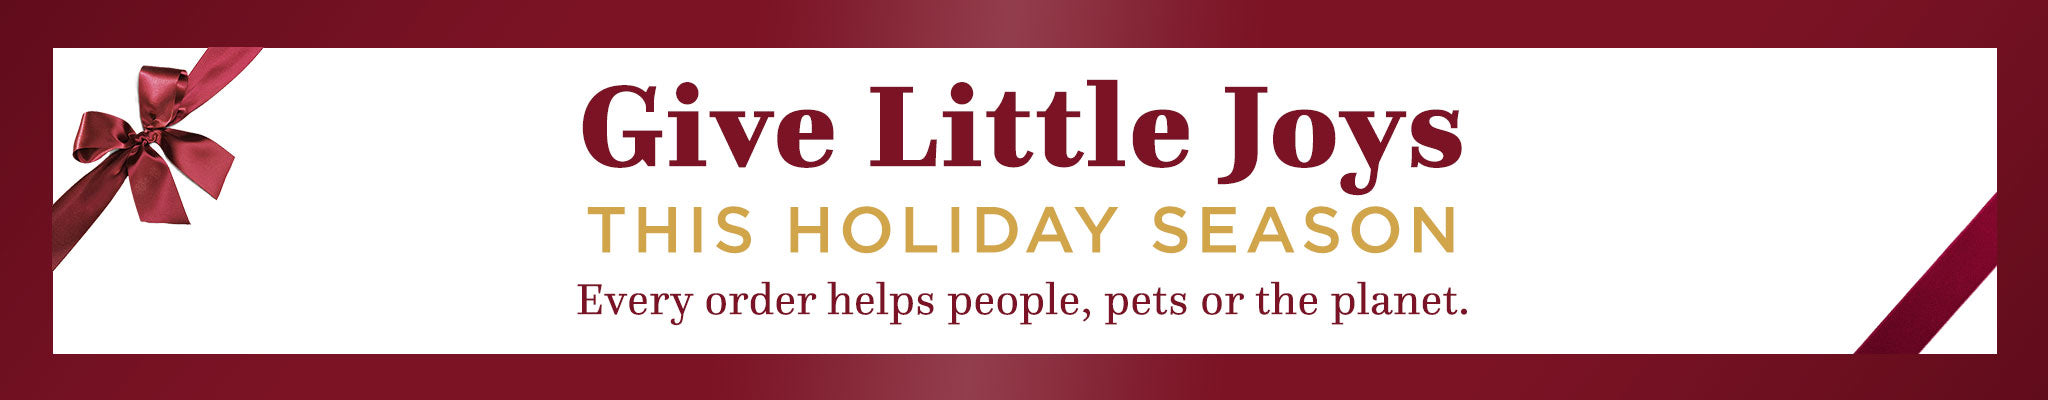 Give Little Joys This Holiday Season | Every order helps people, pets or the planet.